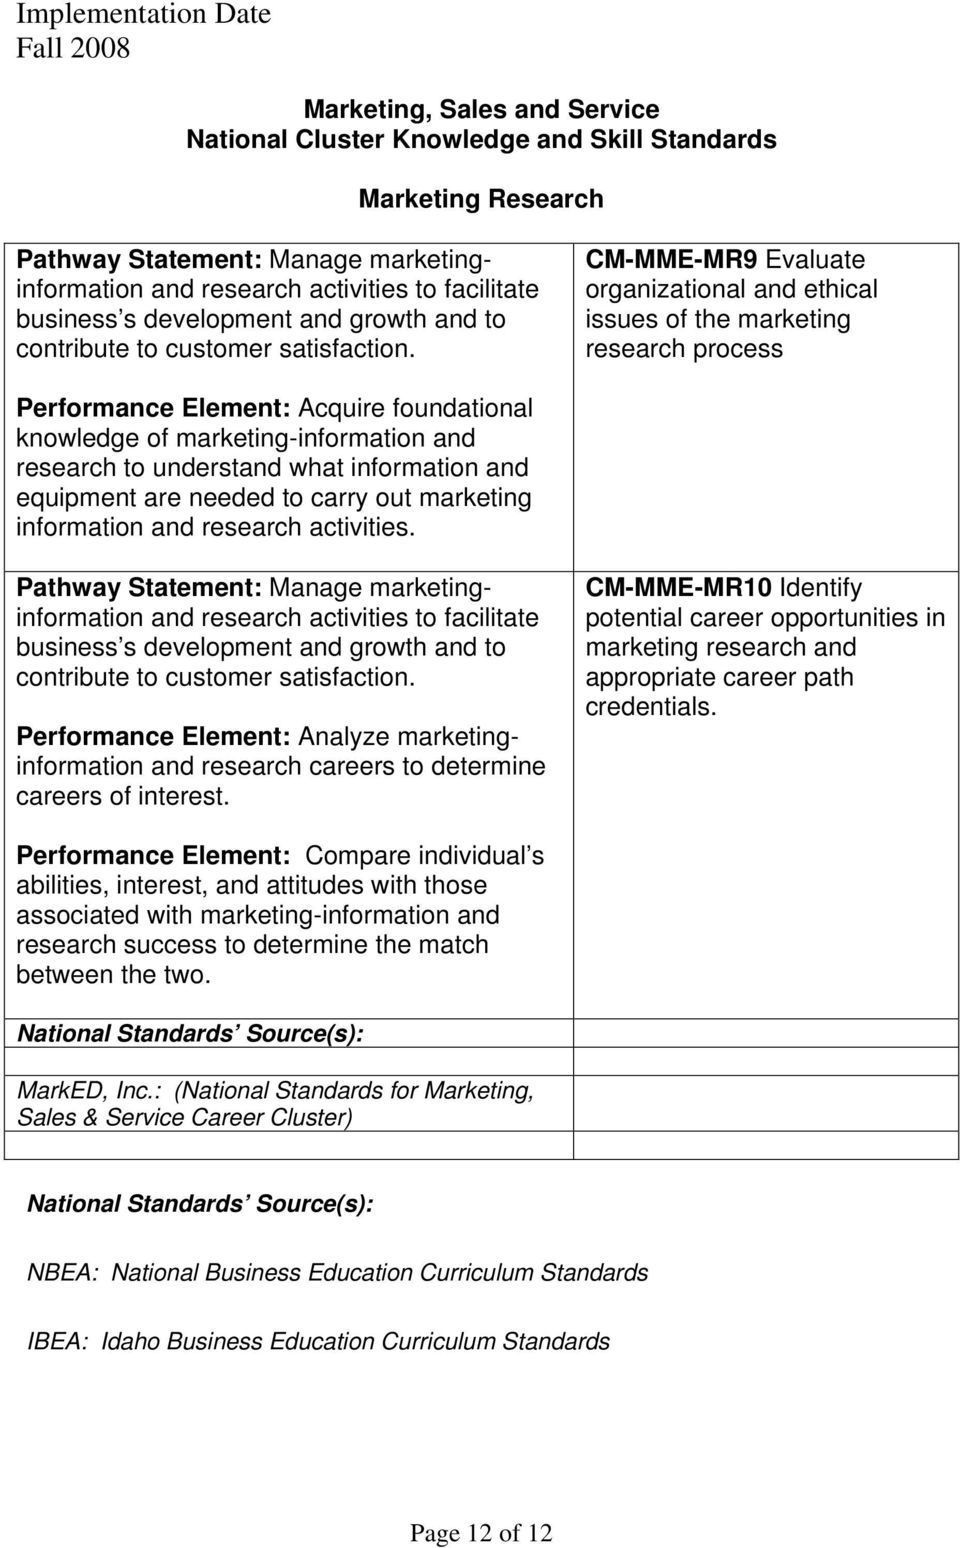 Performance Element: Analyze marketinginformation and research careers to determine careers of interest.